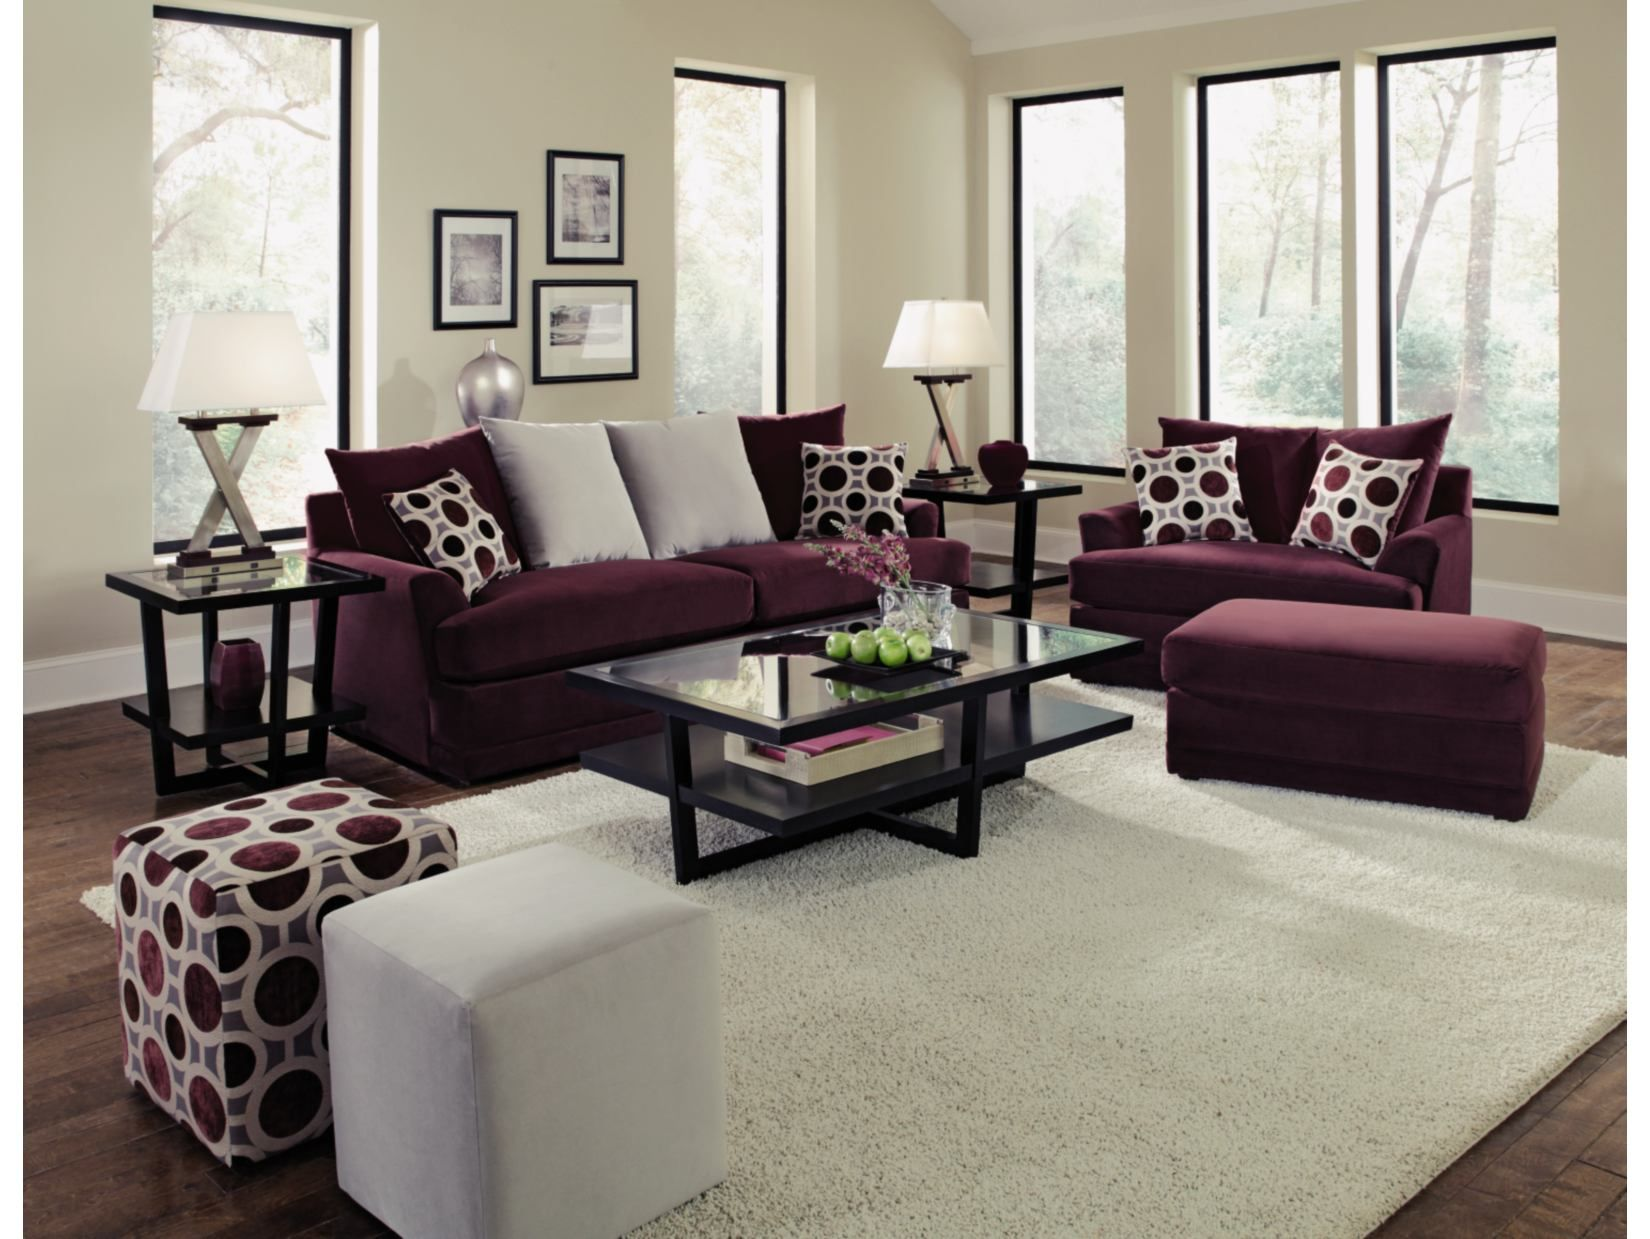 ships back product velvet christopher loveseat garden by to home tufted knight overstock plum nolie high winged canada